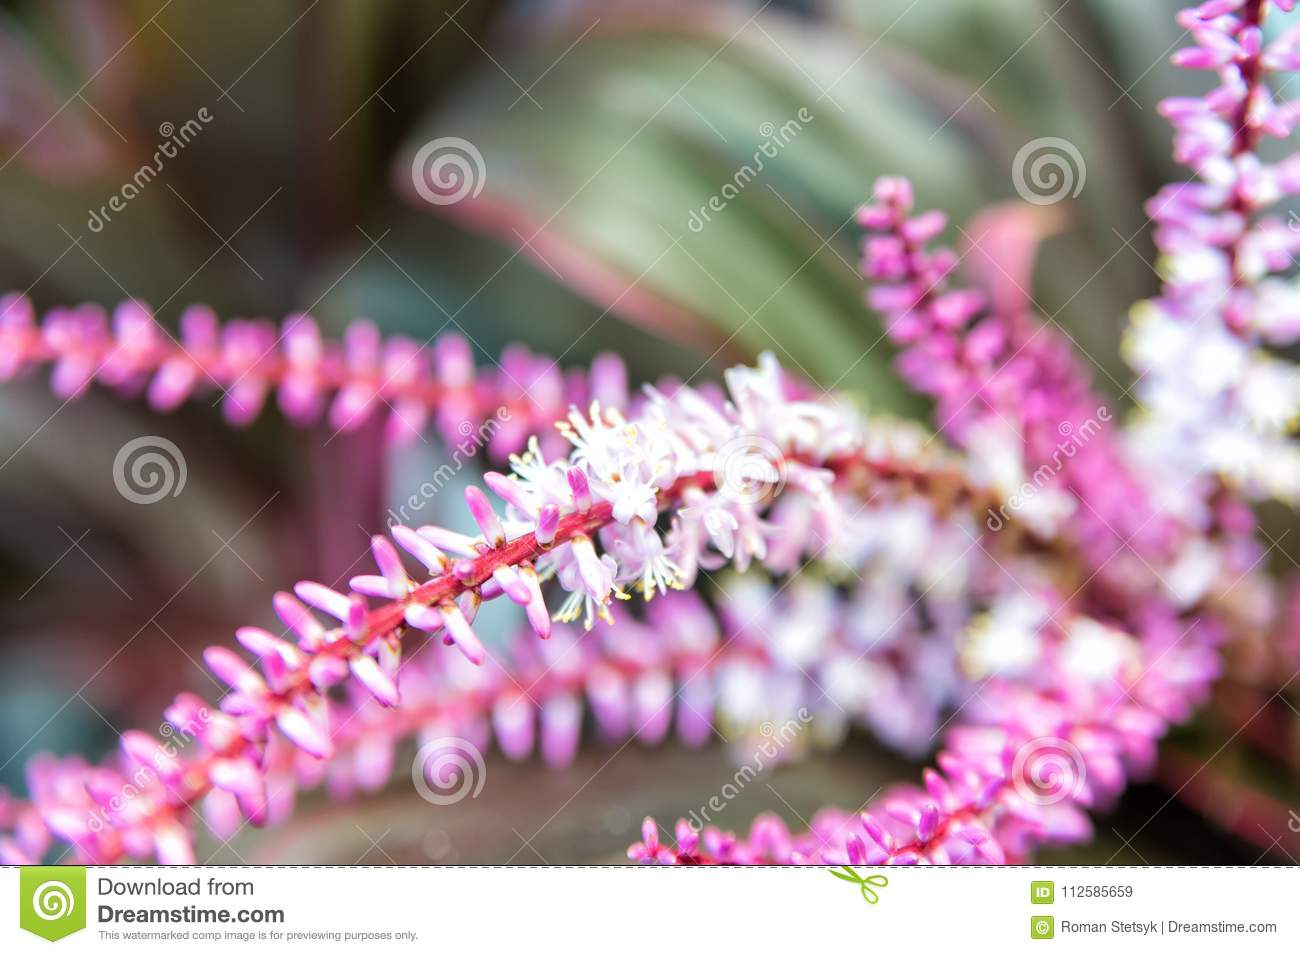 Branch with pink blossom spring flowers bloom on natural branch with pink blossom spring flowers bloom on natural background blossom bloom flowering spring springtime summer nature plant environment mightylinksfo